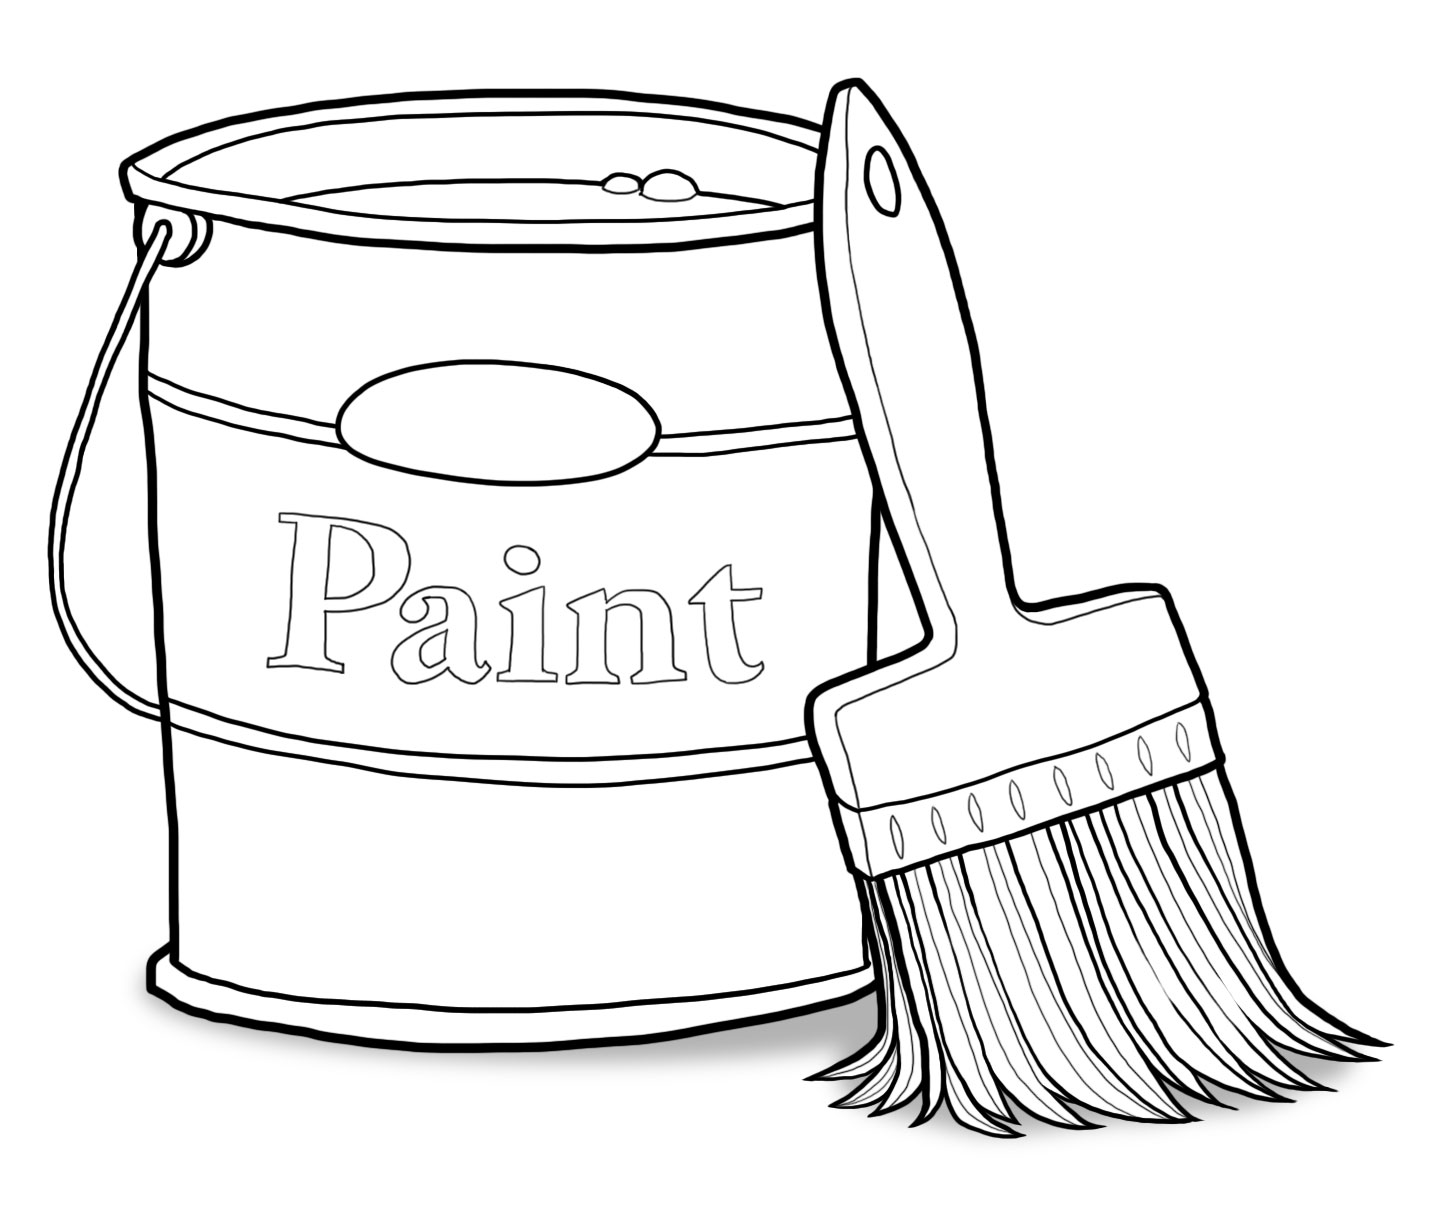 Paint can and brush clipart black and white clip art transparent download Free White Paint Cliparts, Download Free Clip Art, Free Clip Art on ... clip art transparent download